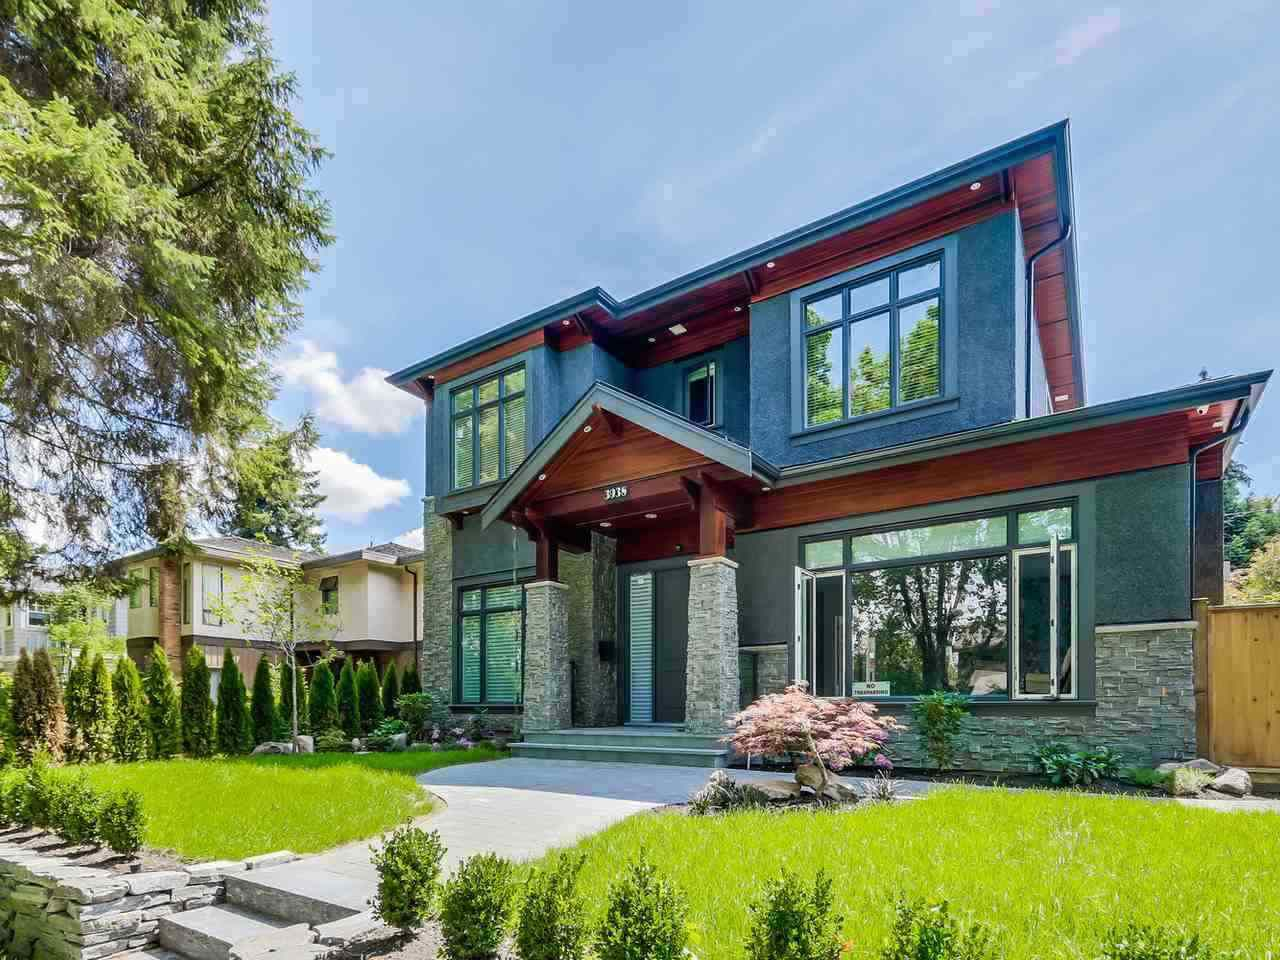 Main Photo: 3938 W 13TH Avenue in Vancouver: Point Grey House for sale (Vancouver West)  : MLS®# R2096904